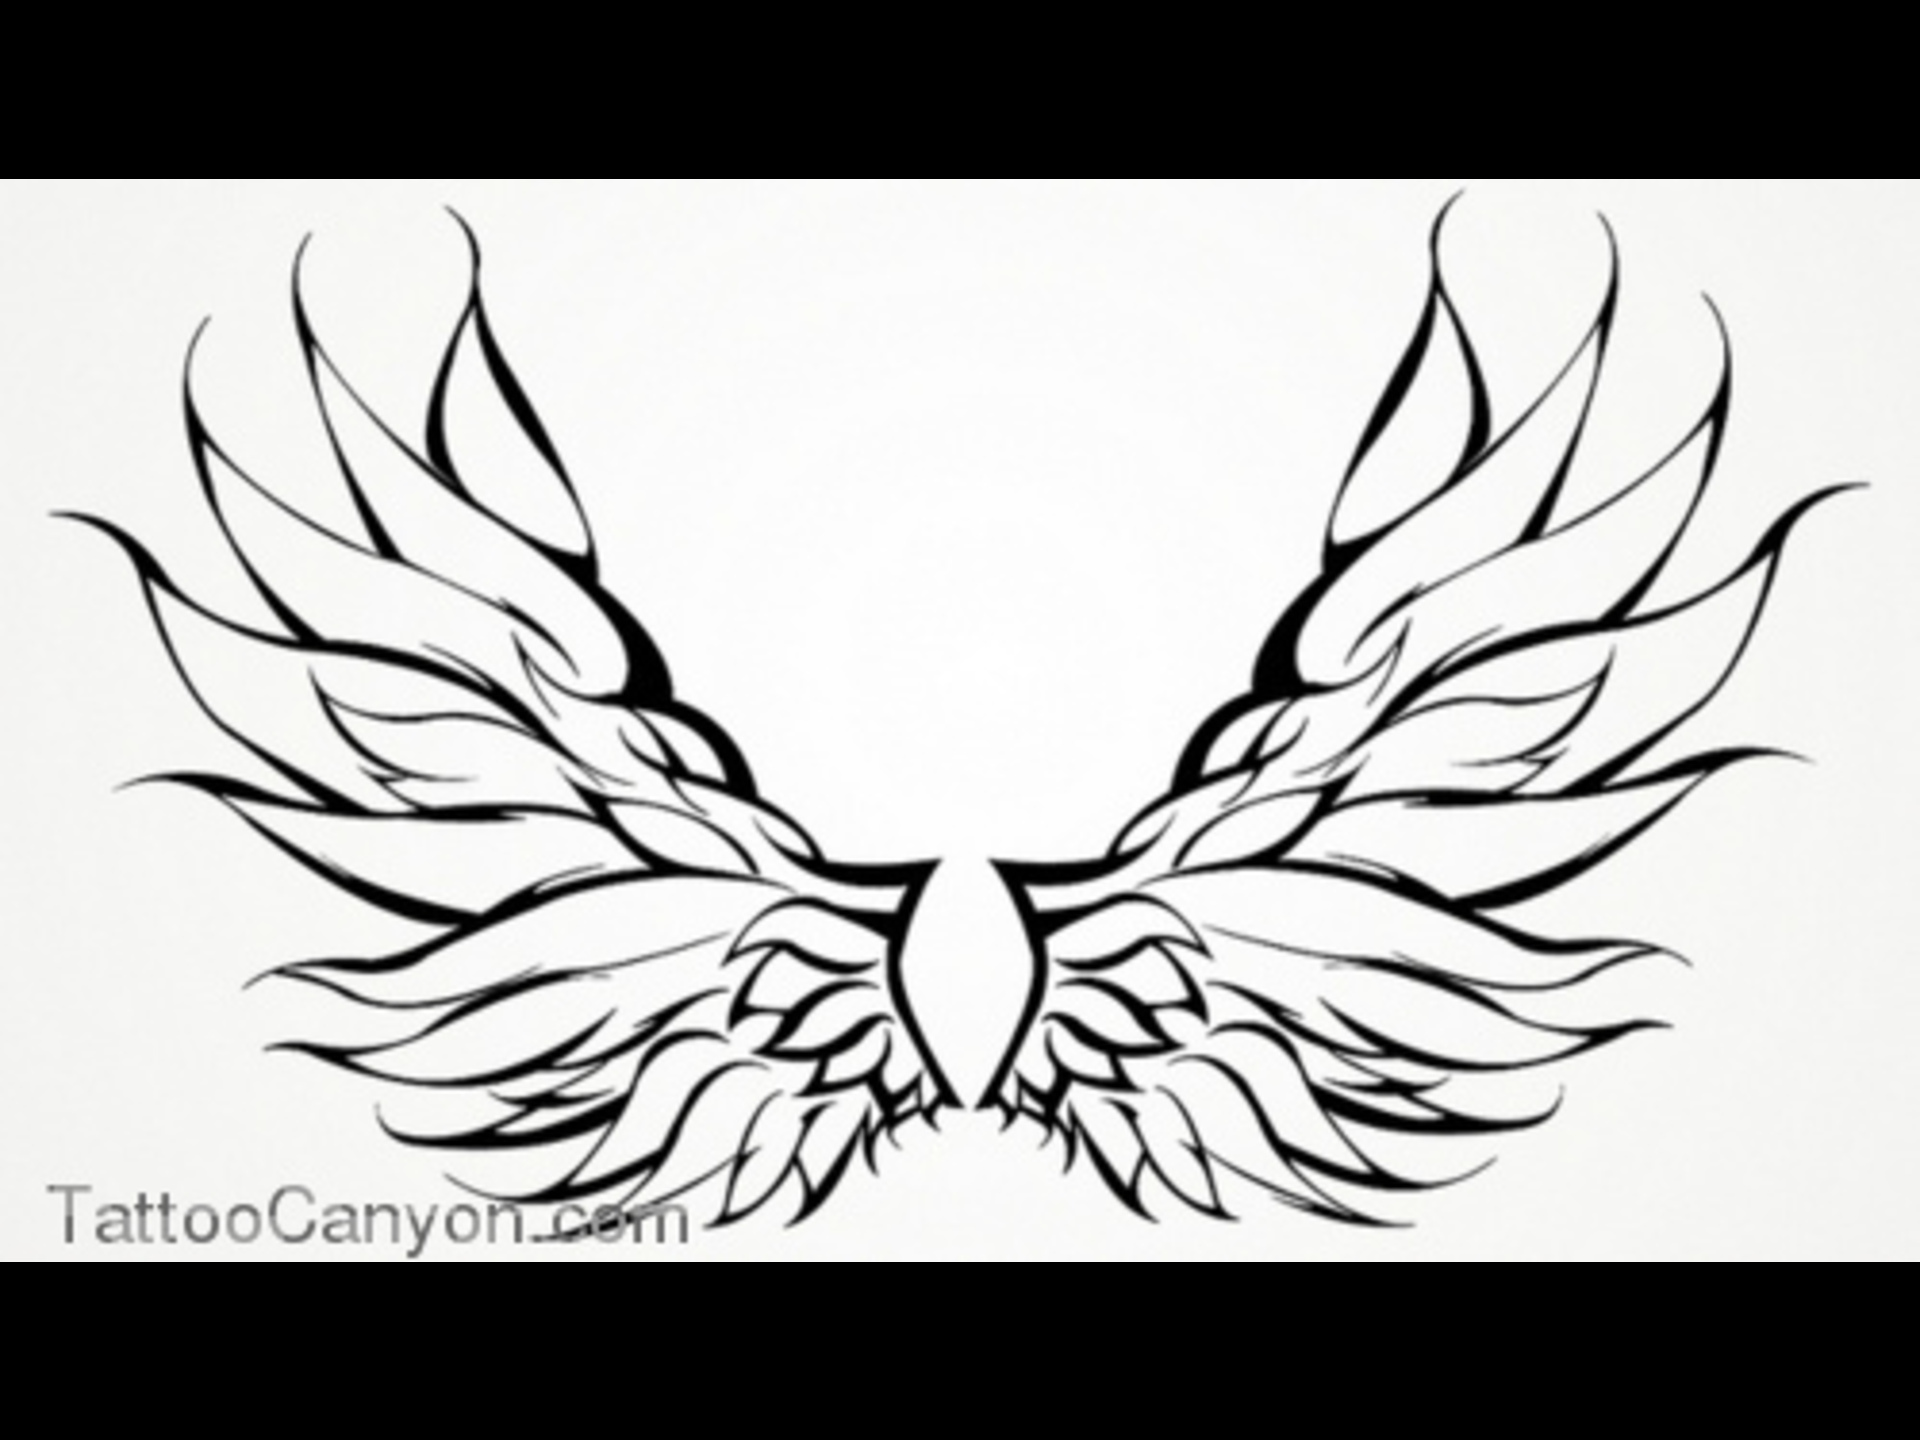 Halo clipart tribal Wings 10378 wings fairy outline